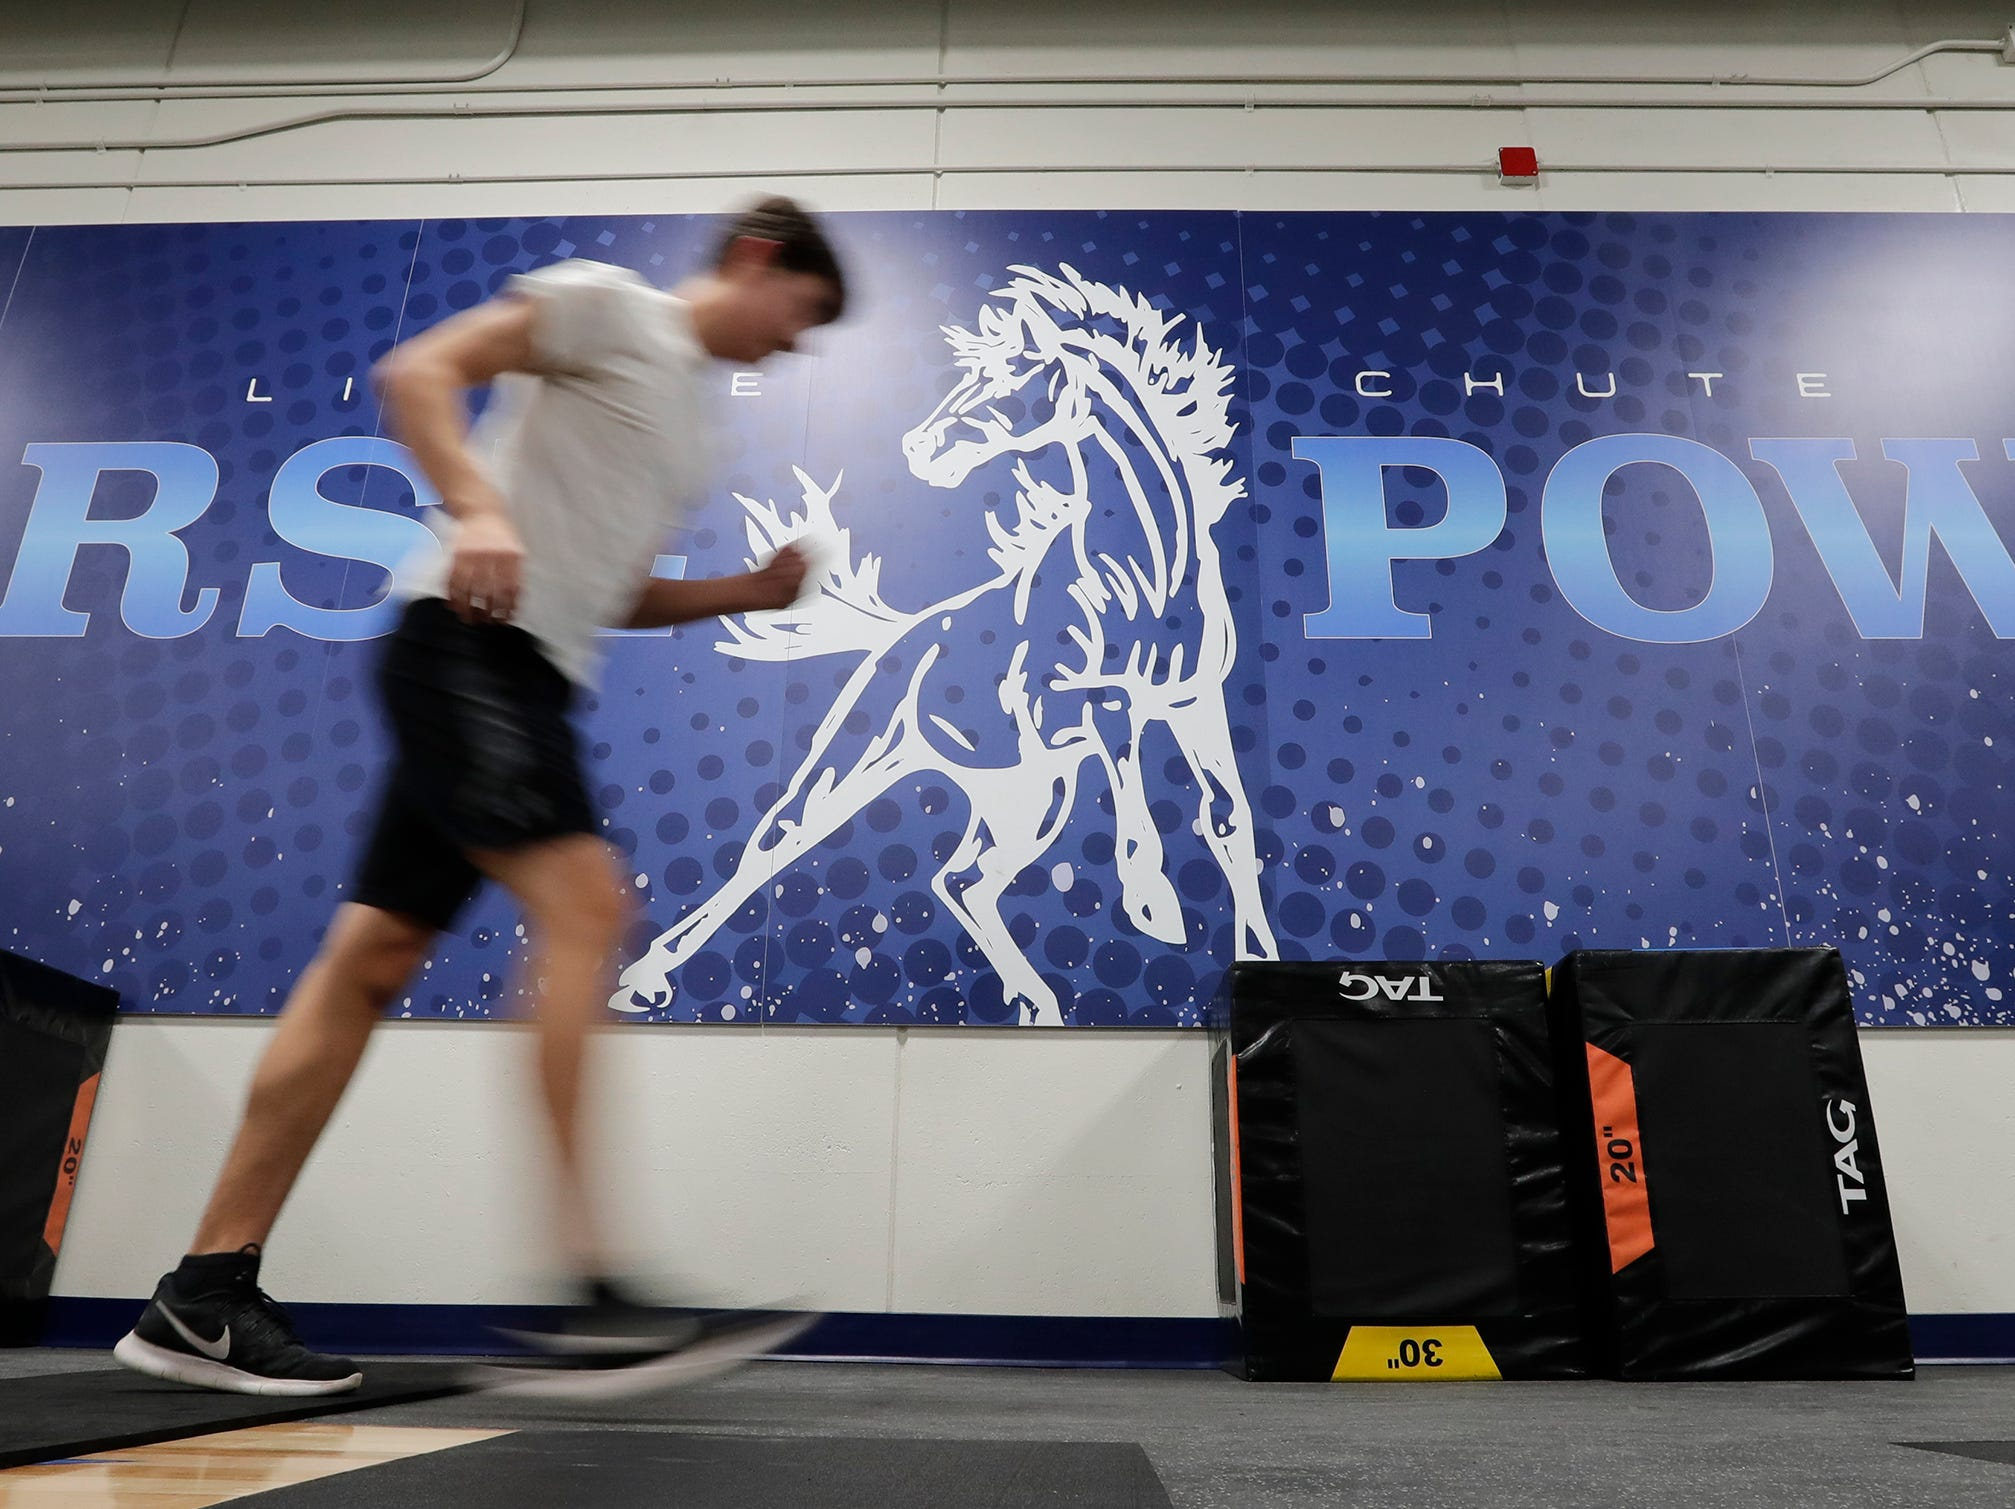 A student participates in the Intro to Strength and Conditioning class in the new fitness center at Little Chute High School Tuesday, November 6, 2018, in Little Chute, Wis. 